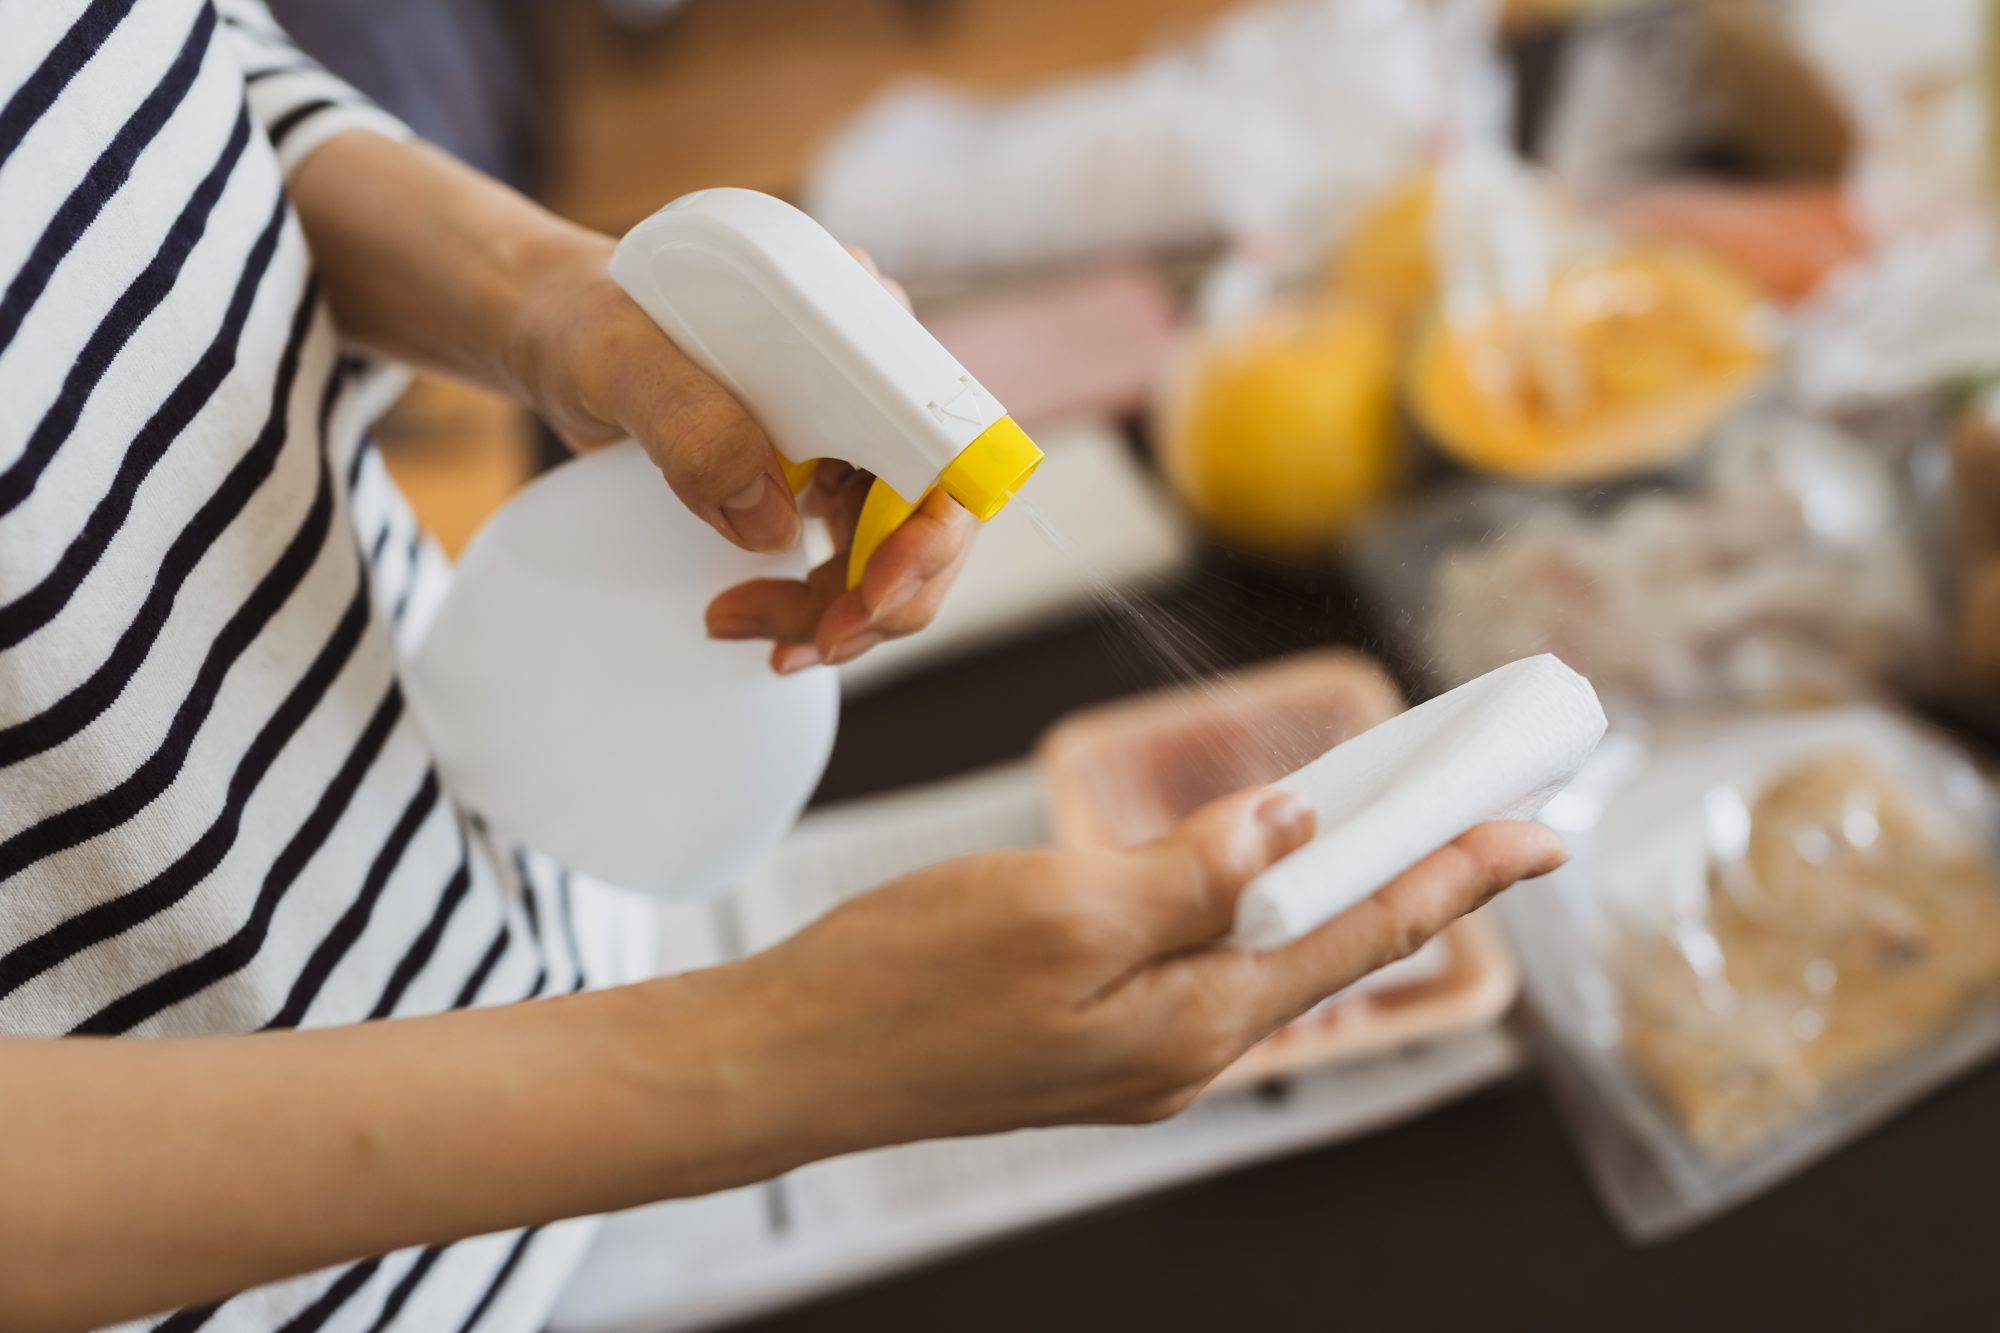 woman disinfecting groceries